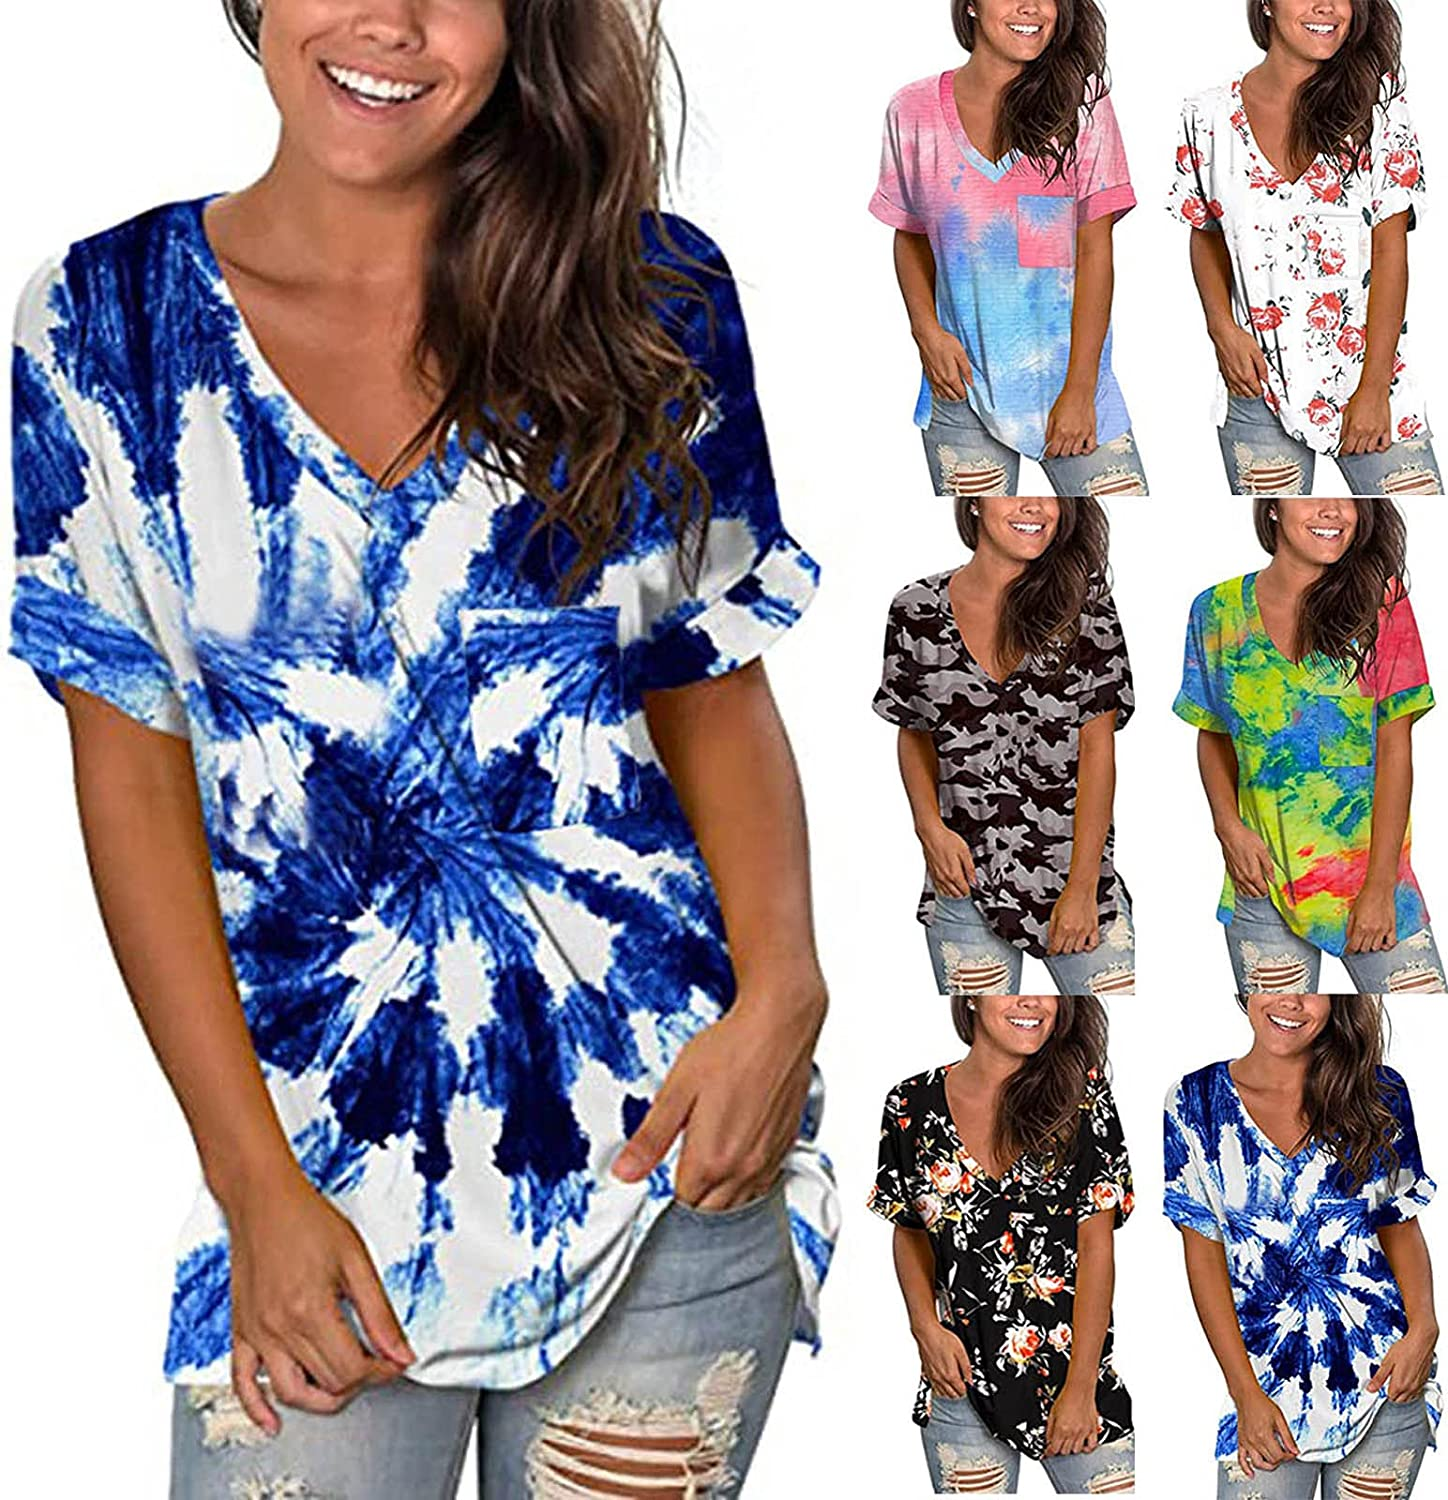 AODONG Womens Summer Tops, Women Short Sleeve T Shirts Loose fit Floral Print Basic Tunic Tops Graphic Tees with Pocket